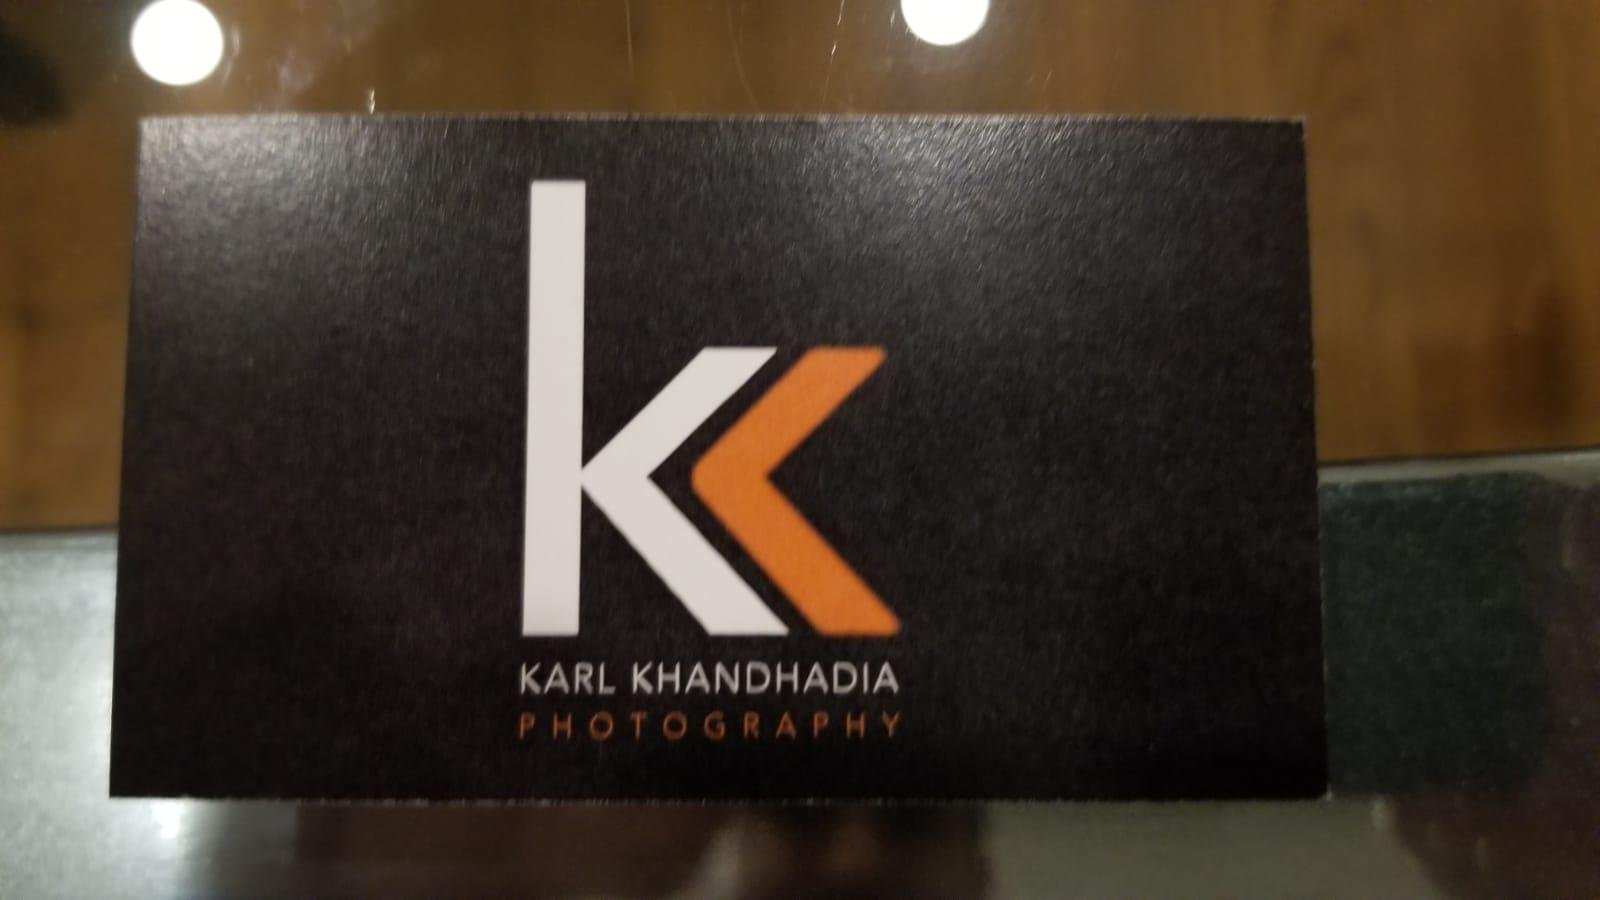 Professional Photography by Karl Khandhadia